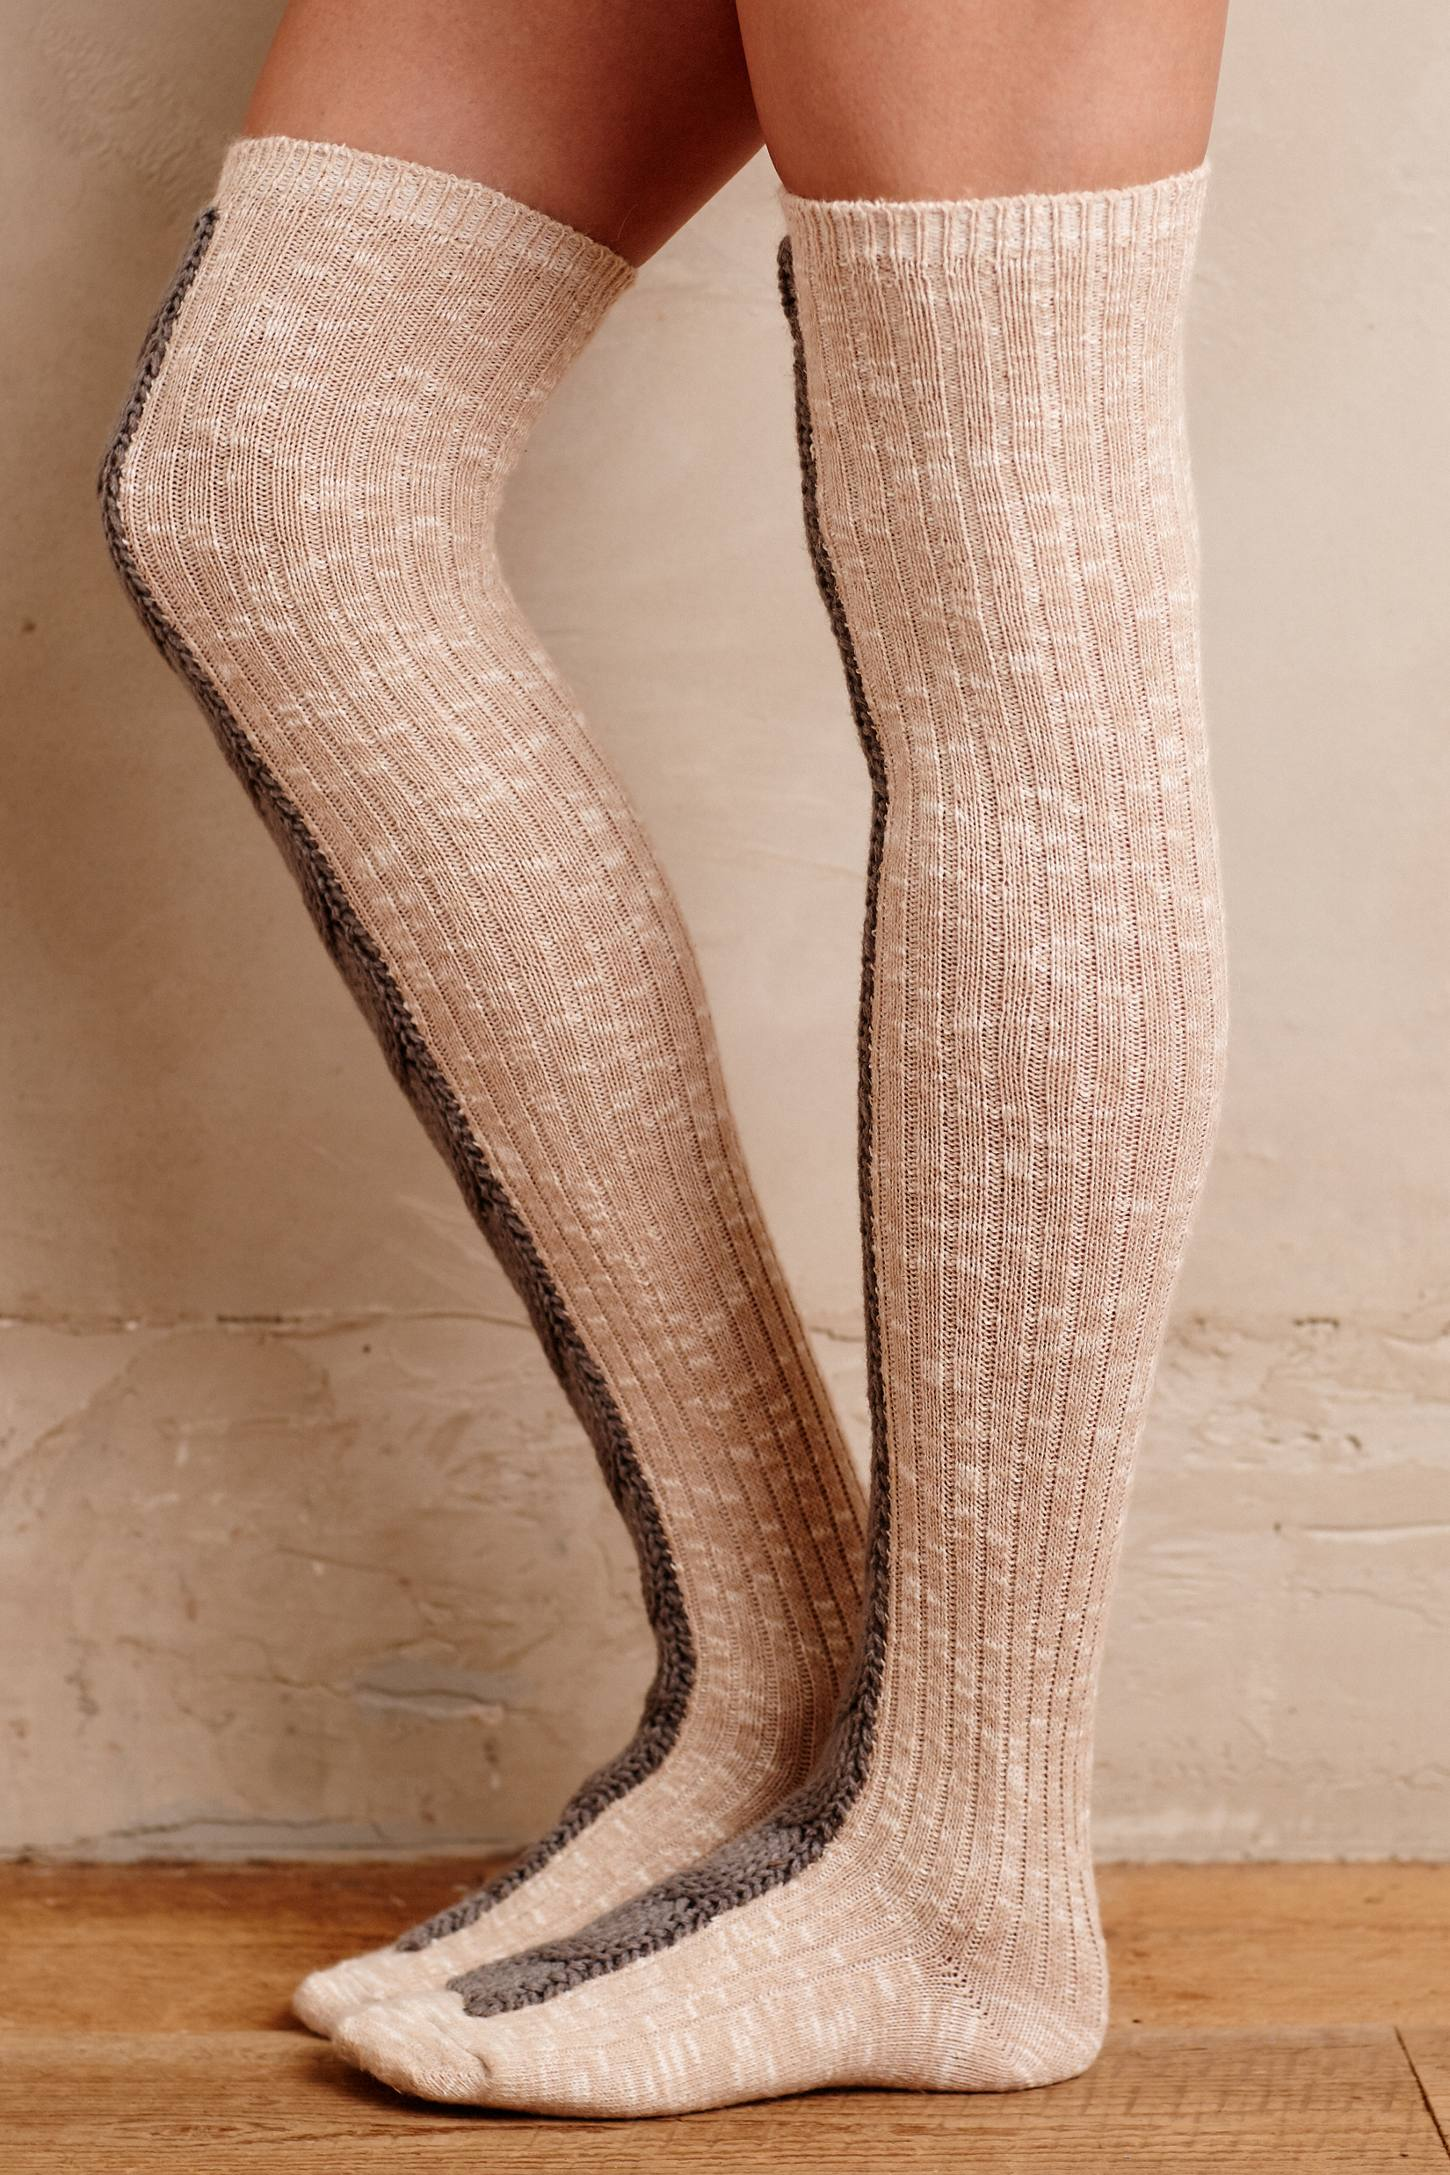 Cabled Over-The-Knee Socks by Lemon